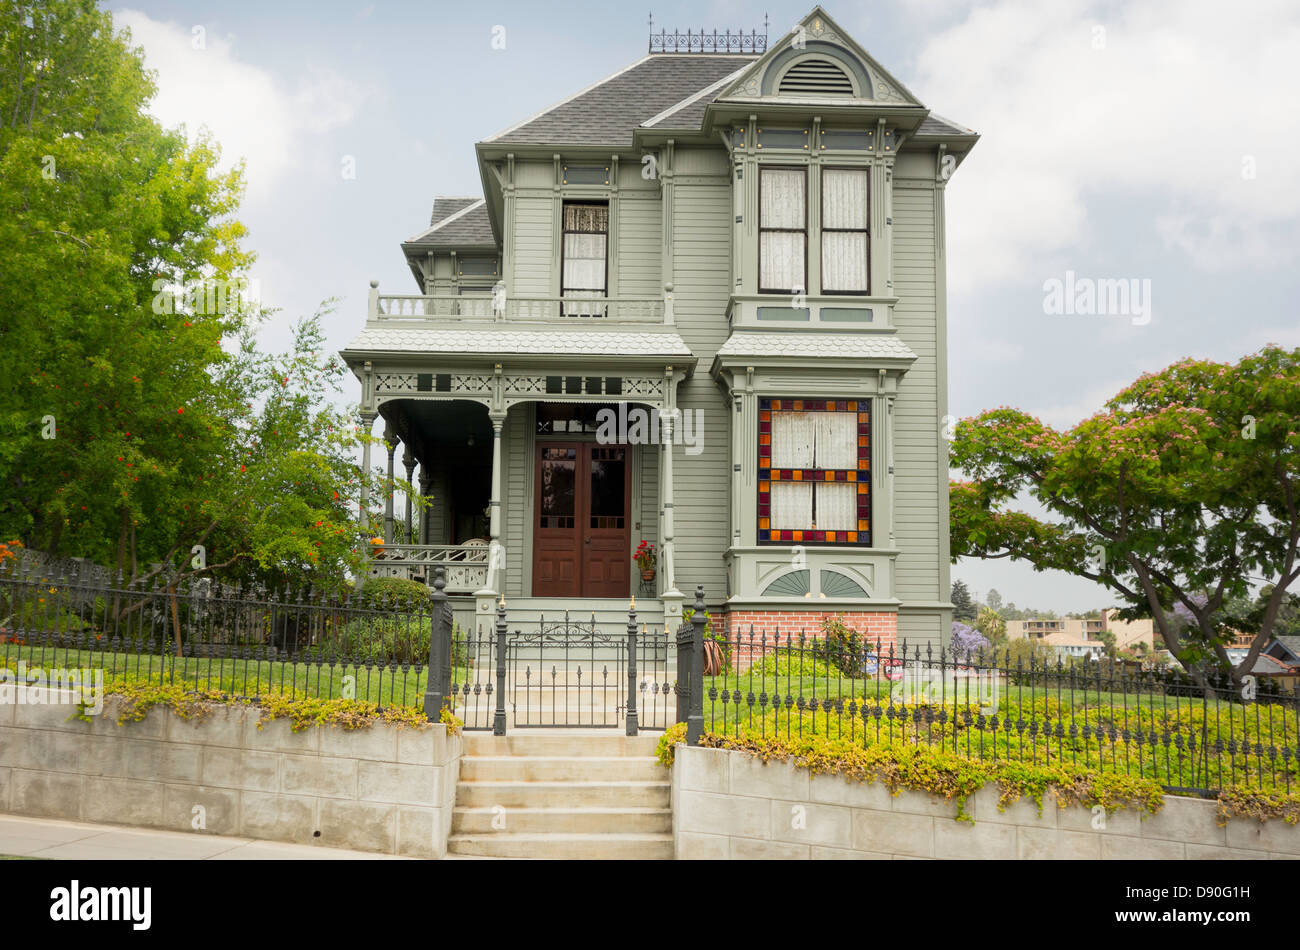 Victorian home in Angeleno Heights district of Los Angeles, the largest concentration of Victorians in Los Angeles, - Stock Image